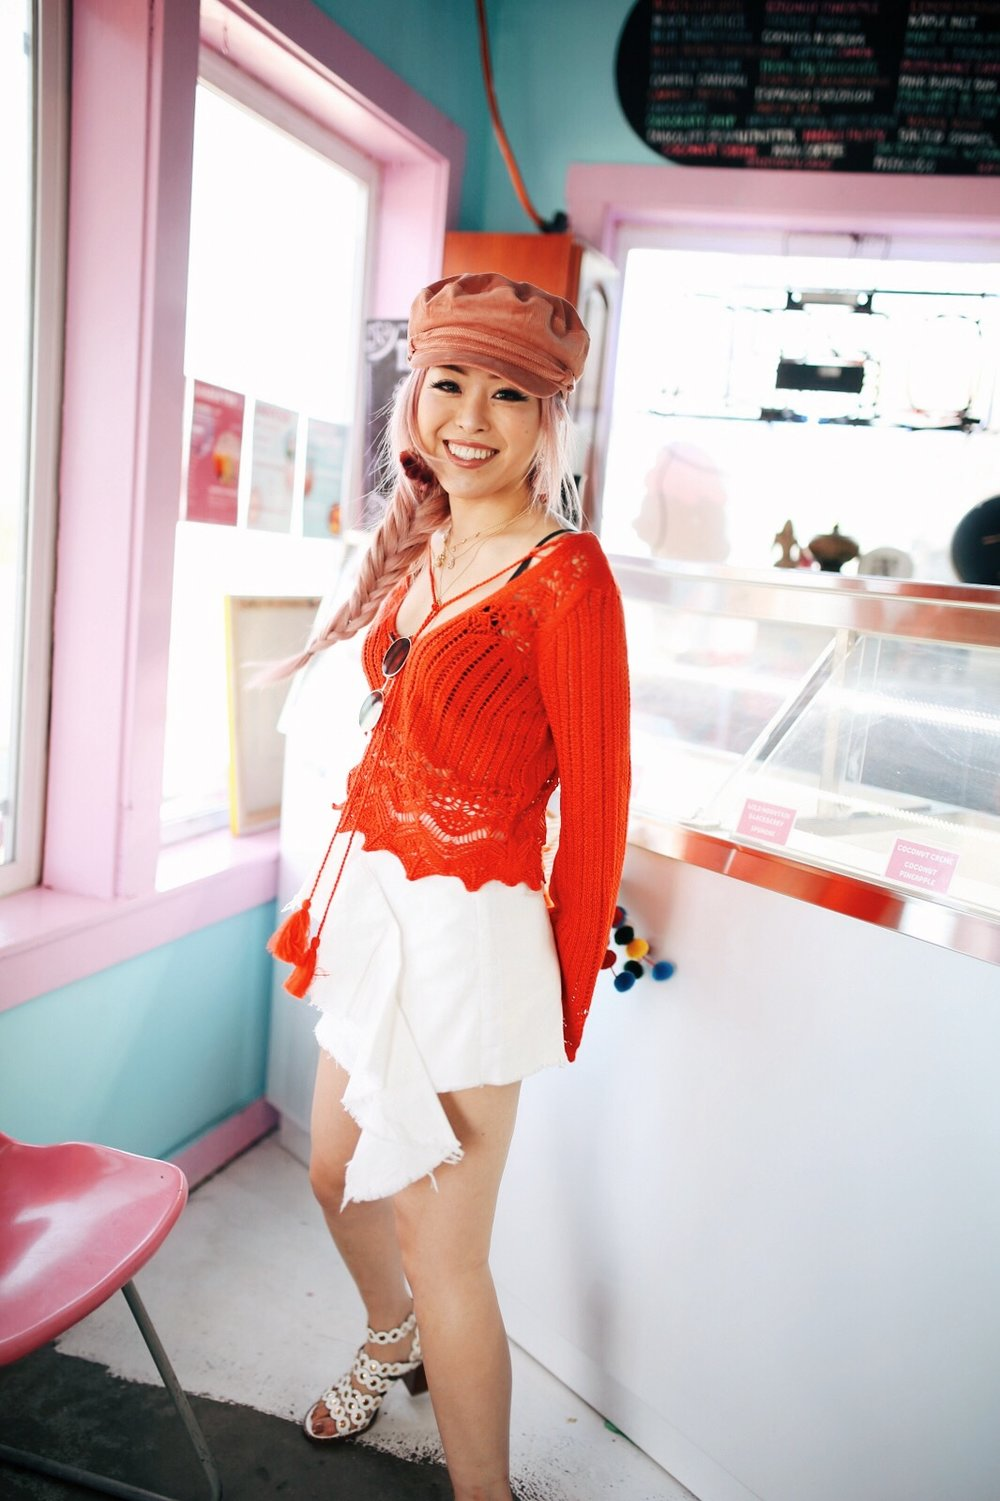 River Island Pink cord baker boy hat-Pink ombre tassel drop earrings-Red crotchet knit tassel crop top-White frill denim skort-White scallop block heel sandals-Shein Straw box bag with pom pom-Aikas Love Closet-Seattle Style Fashion Blogger-Japanese-Pink Hair-Side fishtail braid-summer style-smile 11